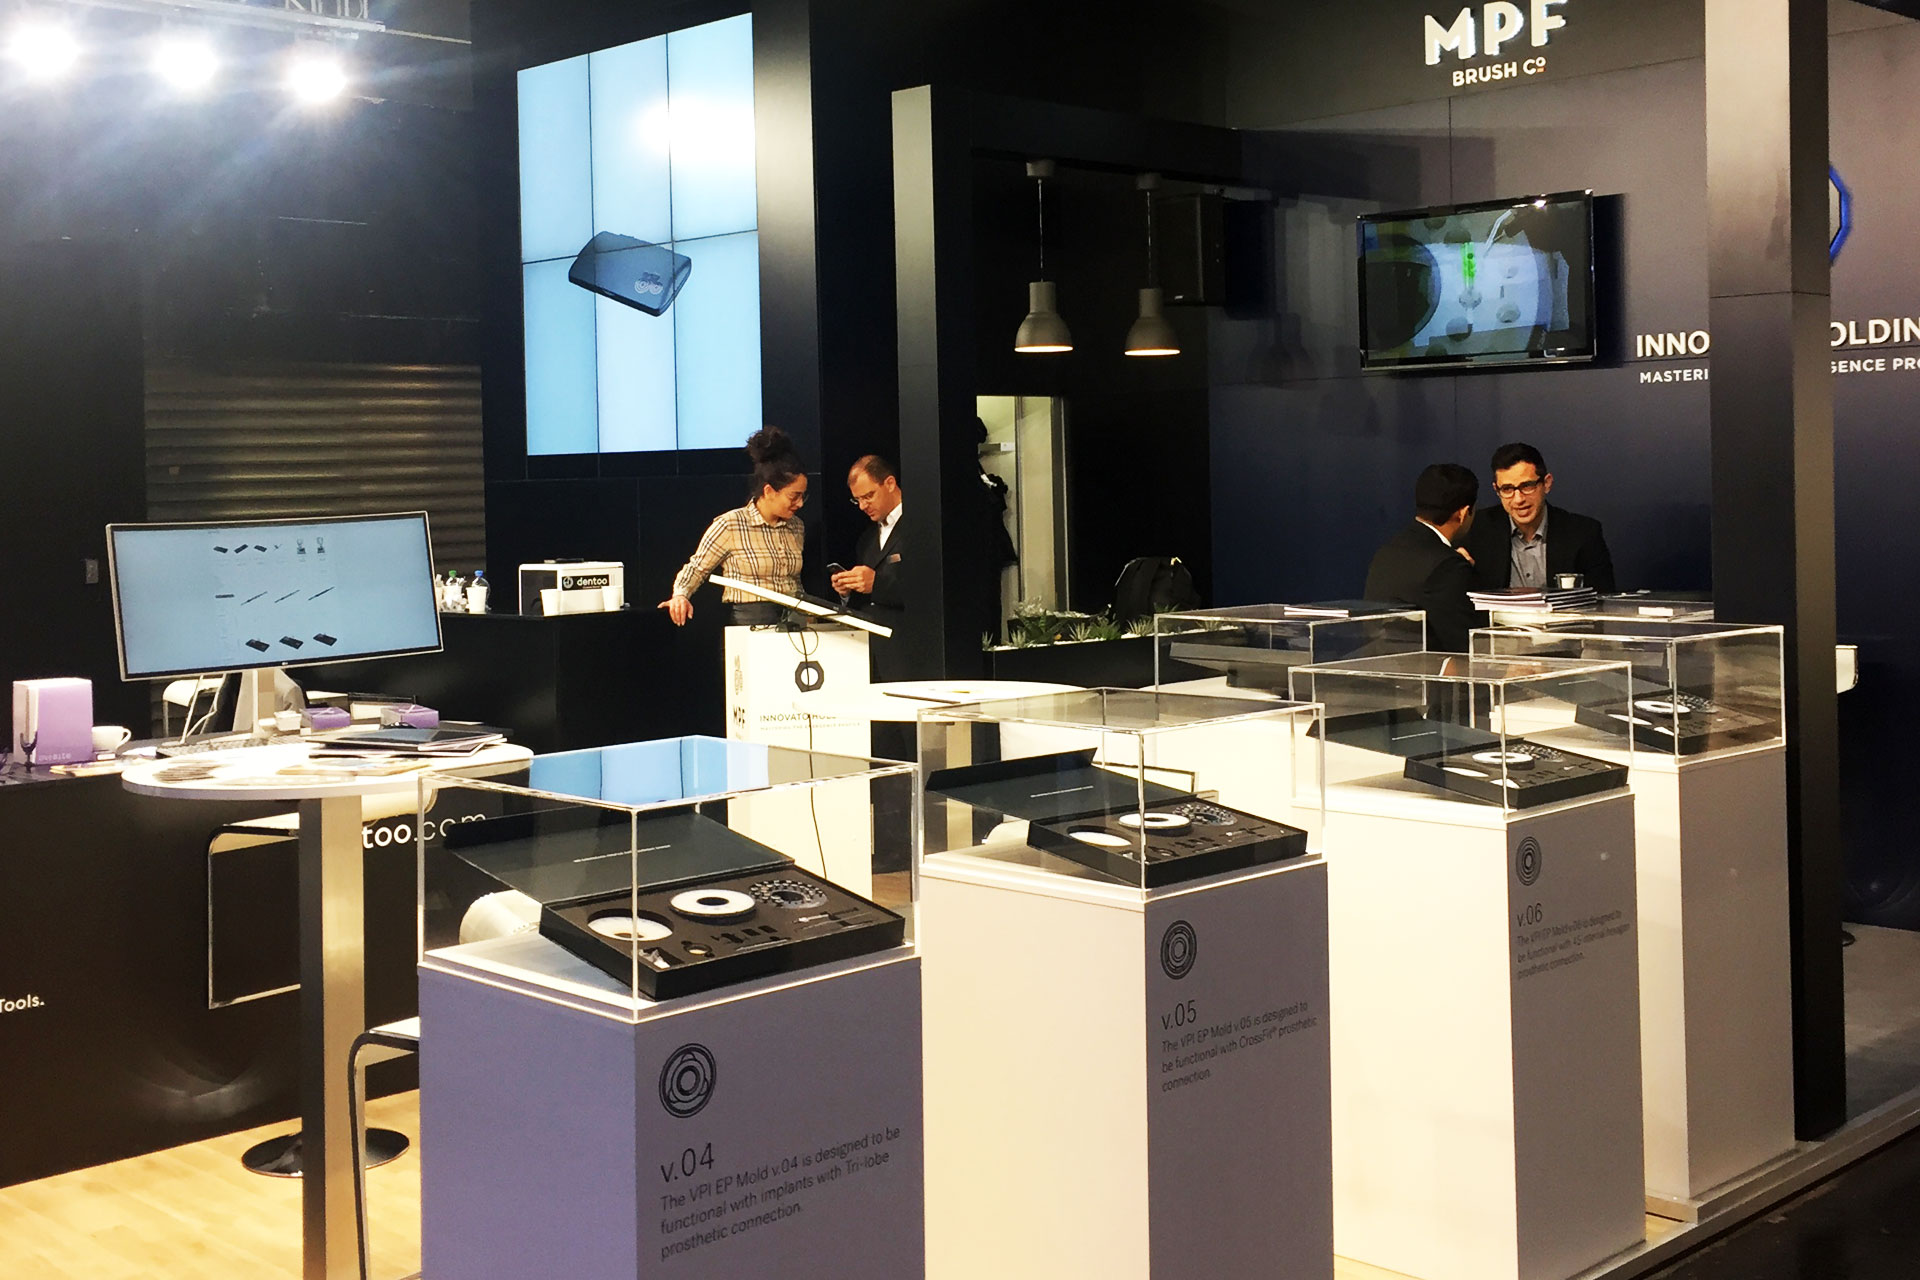 Messestand MPF Brush- IDS 2017 Messebau CCKöln